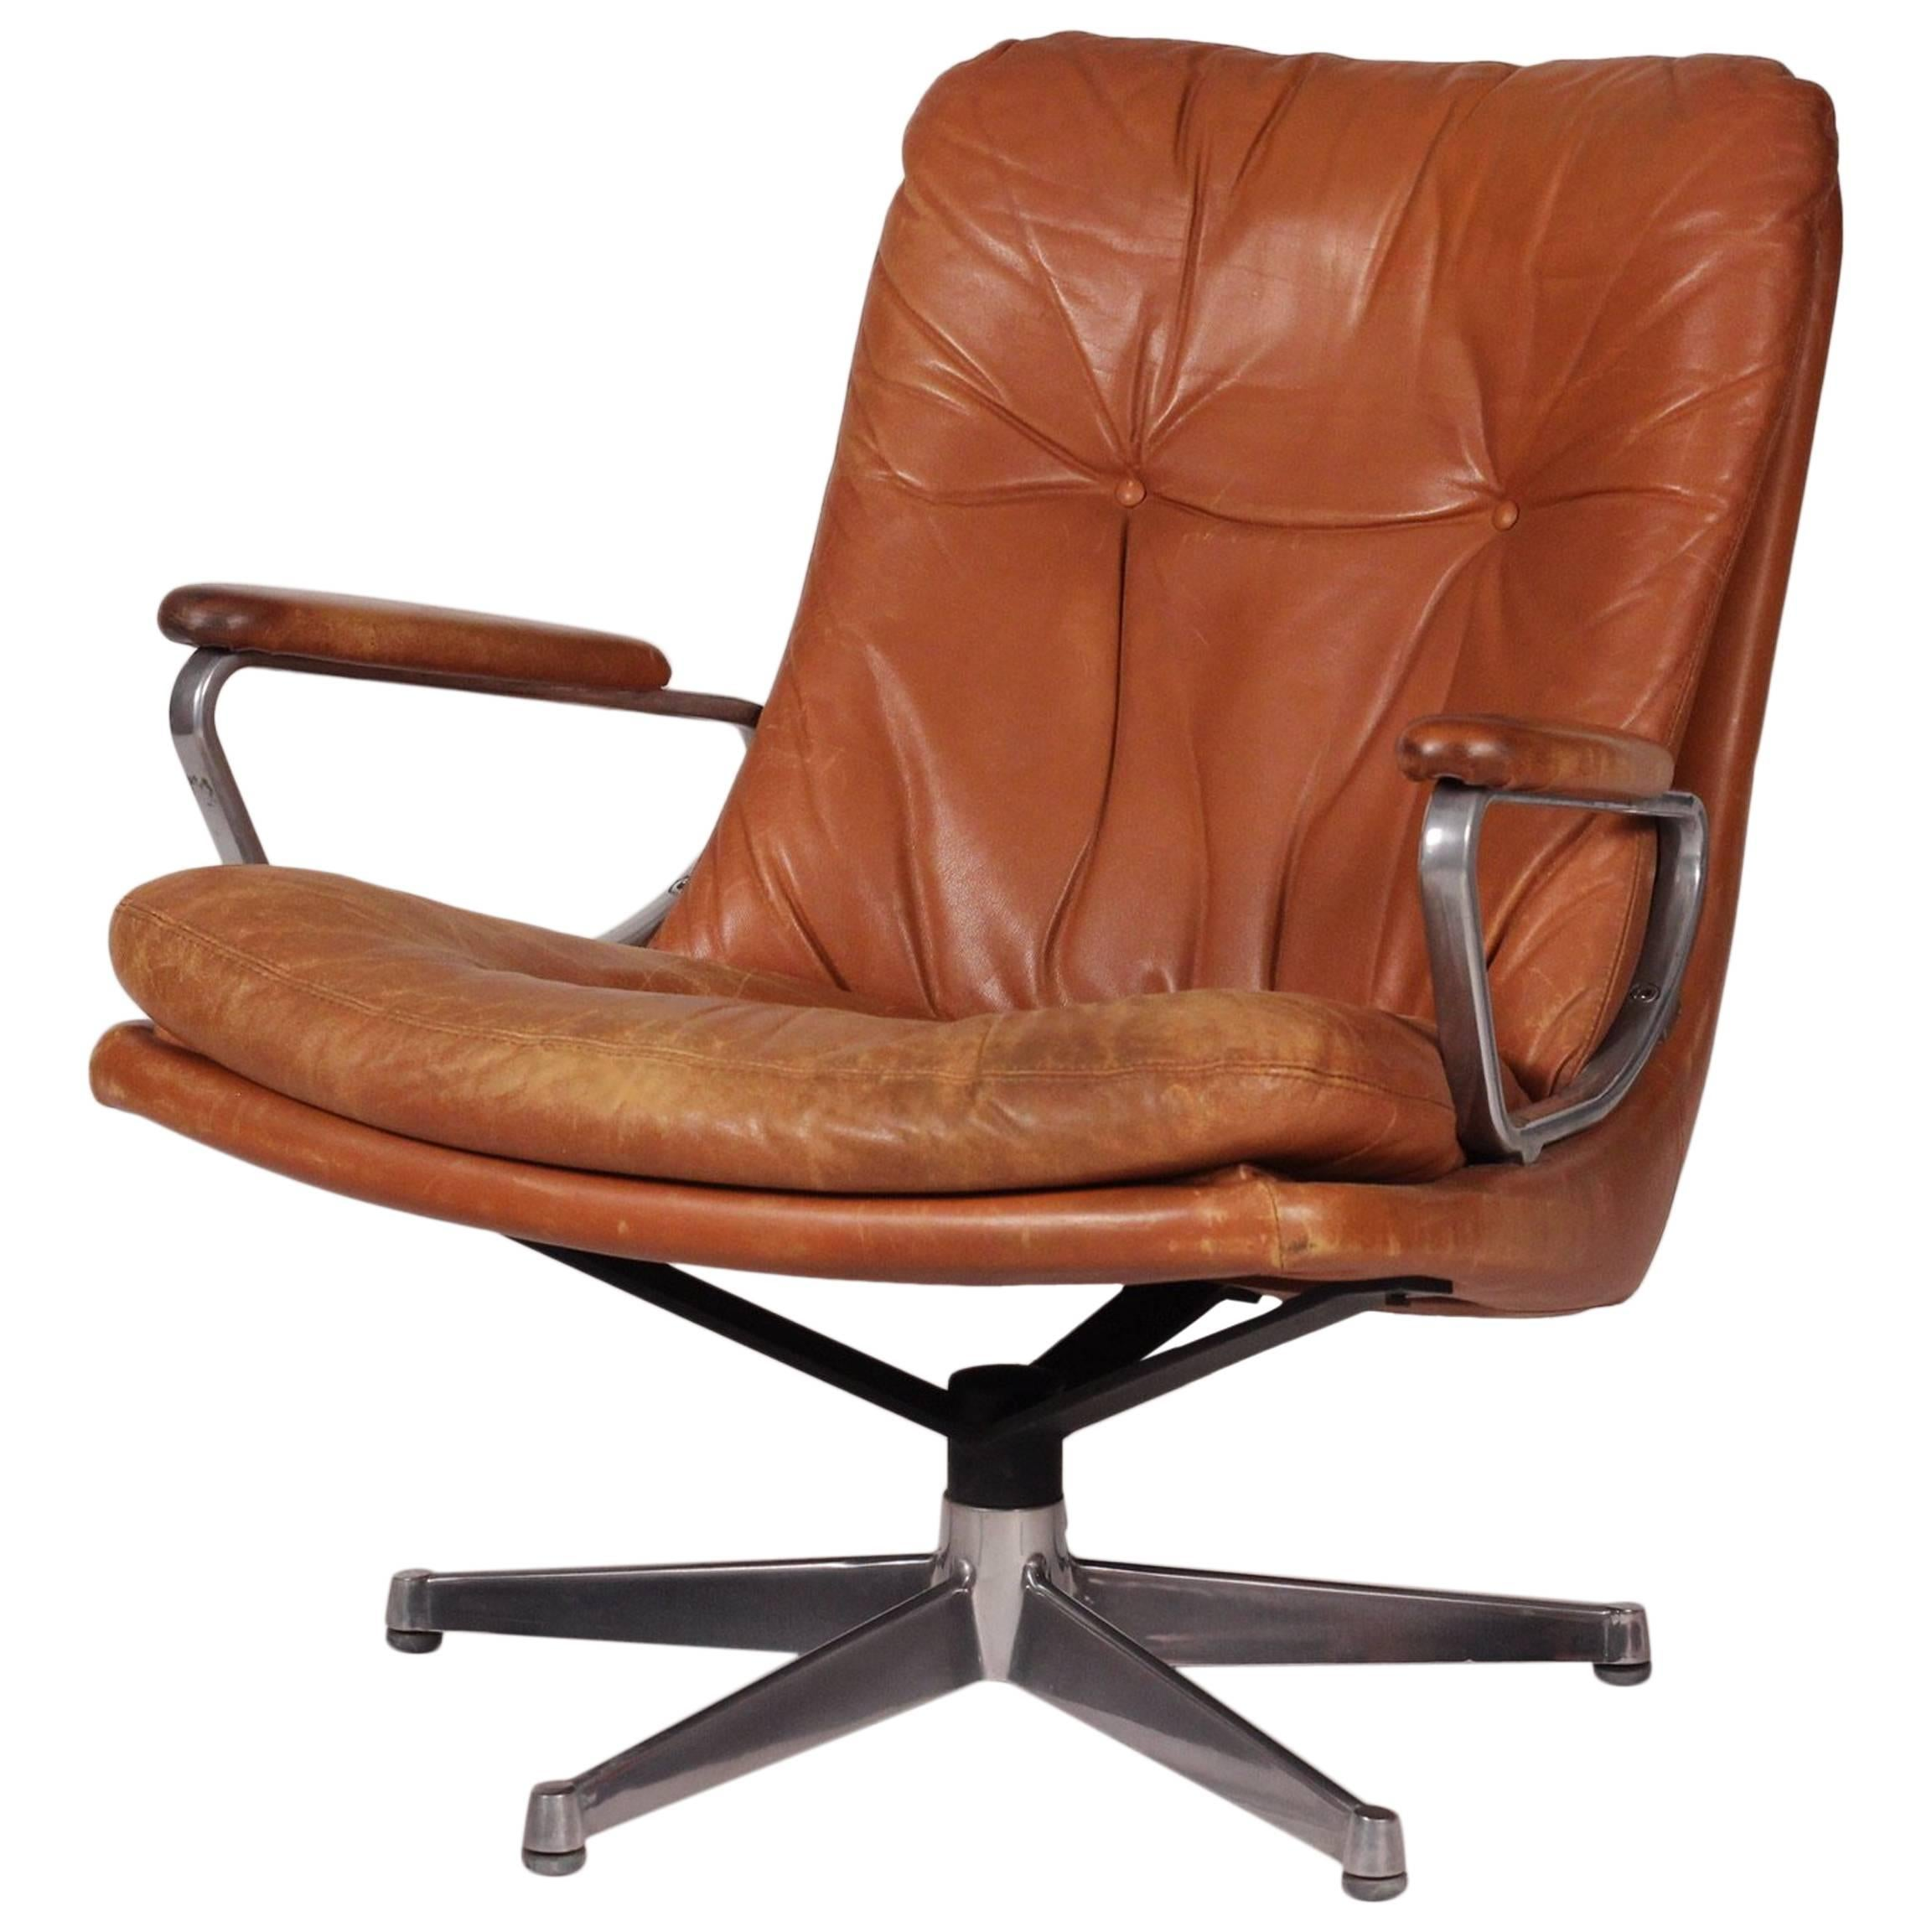 Modern Leather Chairs Mid Century Modern Leather Lounge Chair Designed By André Vandenbeuck